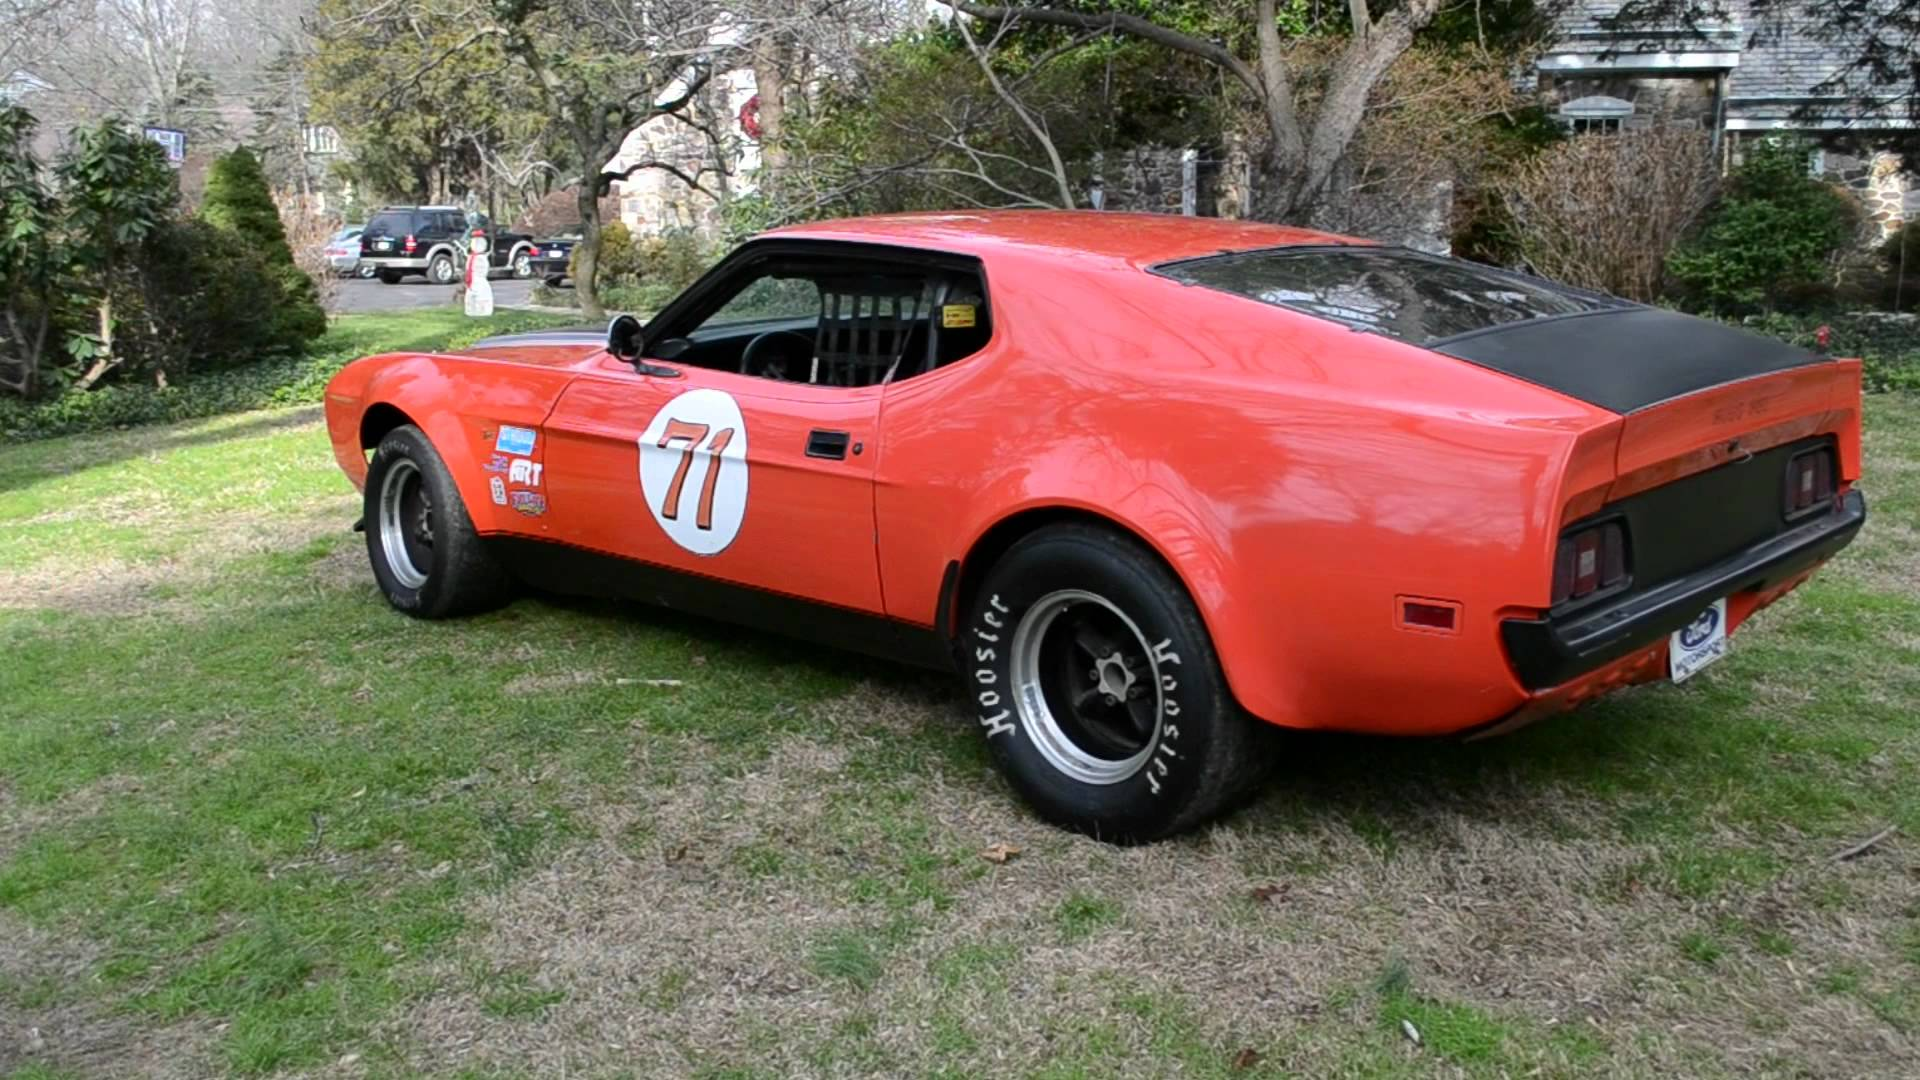 1971 mustang mach 1 boss 351 race car for sale on ebay nikon d3100 1080p hd youtube